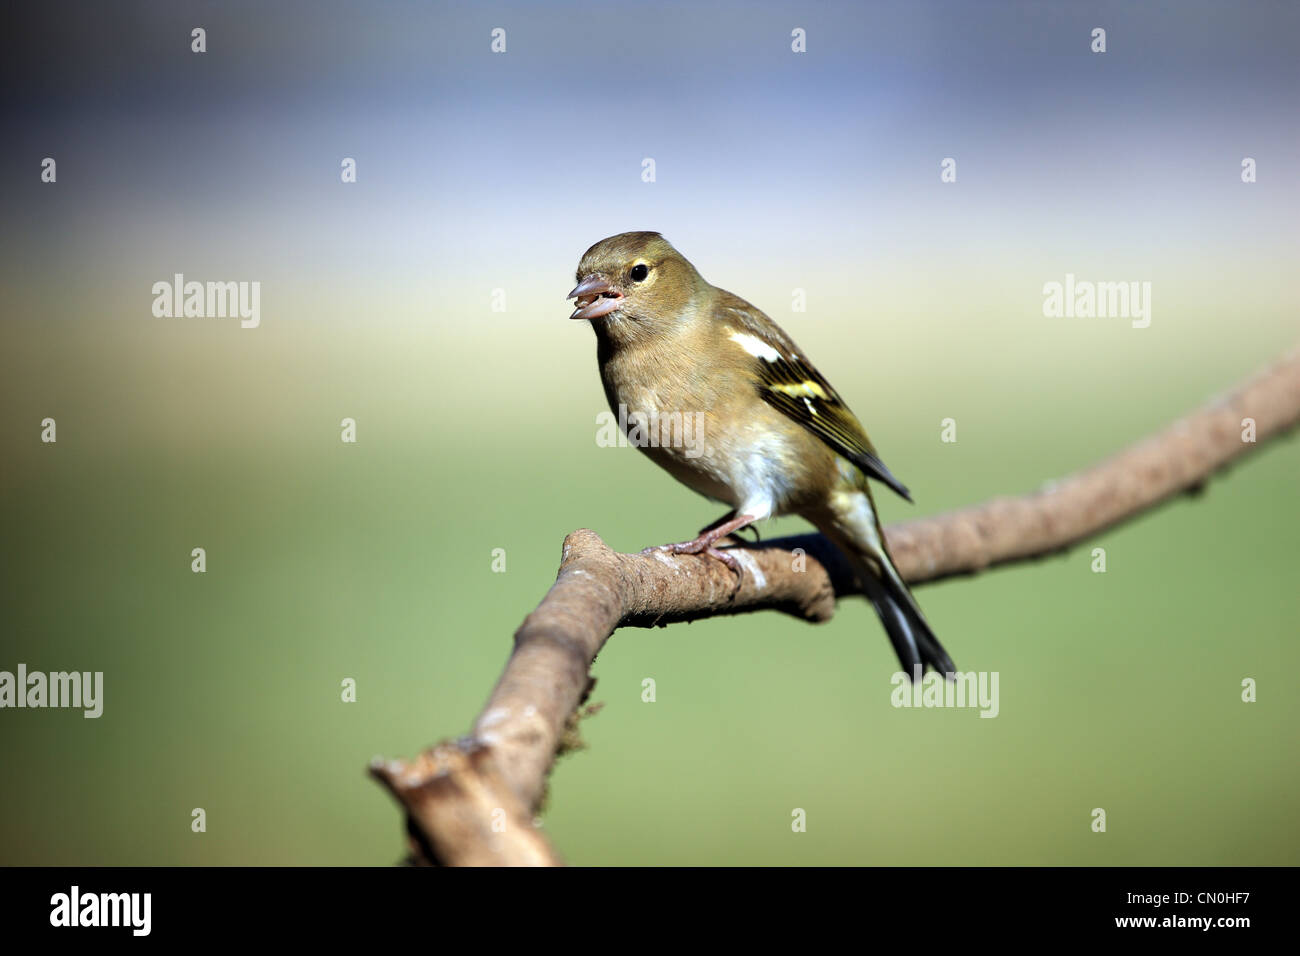 Adult Chaffinch on a tree branch in Scotland - Stock Image